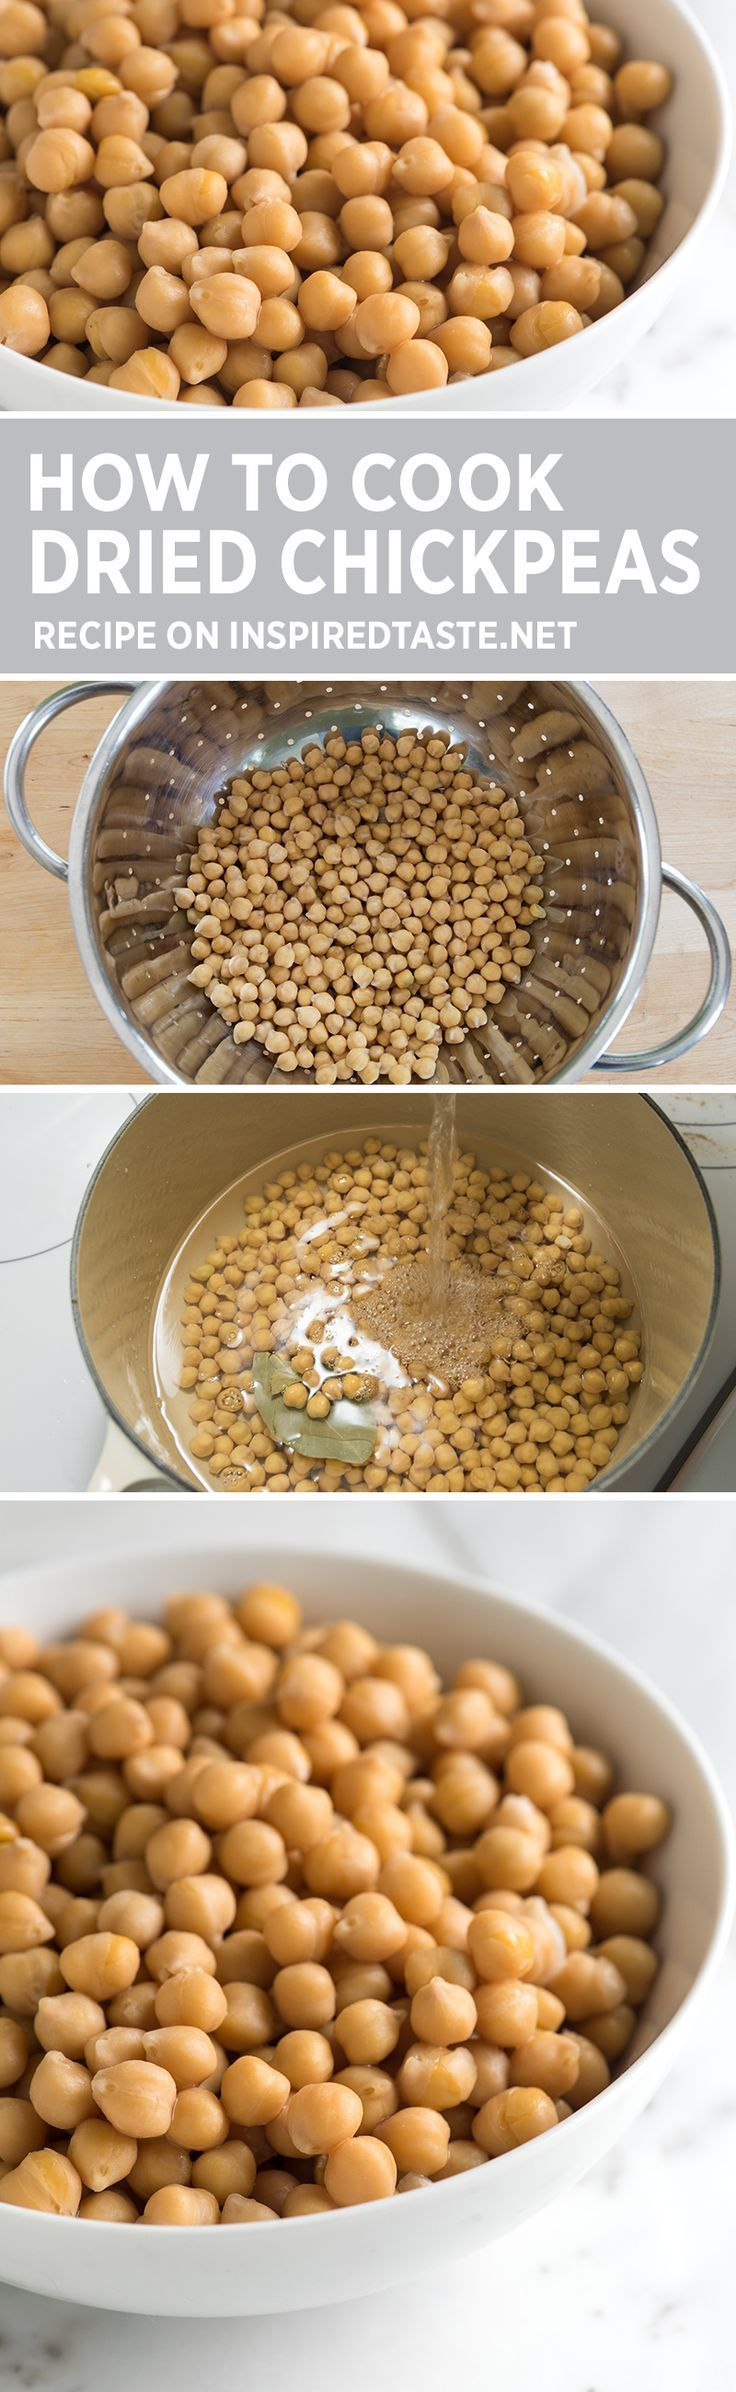 Three Simple Methods for How to Cook Dried Chickpeas - How to soak and cook chickpeas including how to cook them in a slow cooker. Plus how to store them and a few ideas for using them. #chickpeas